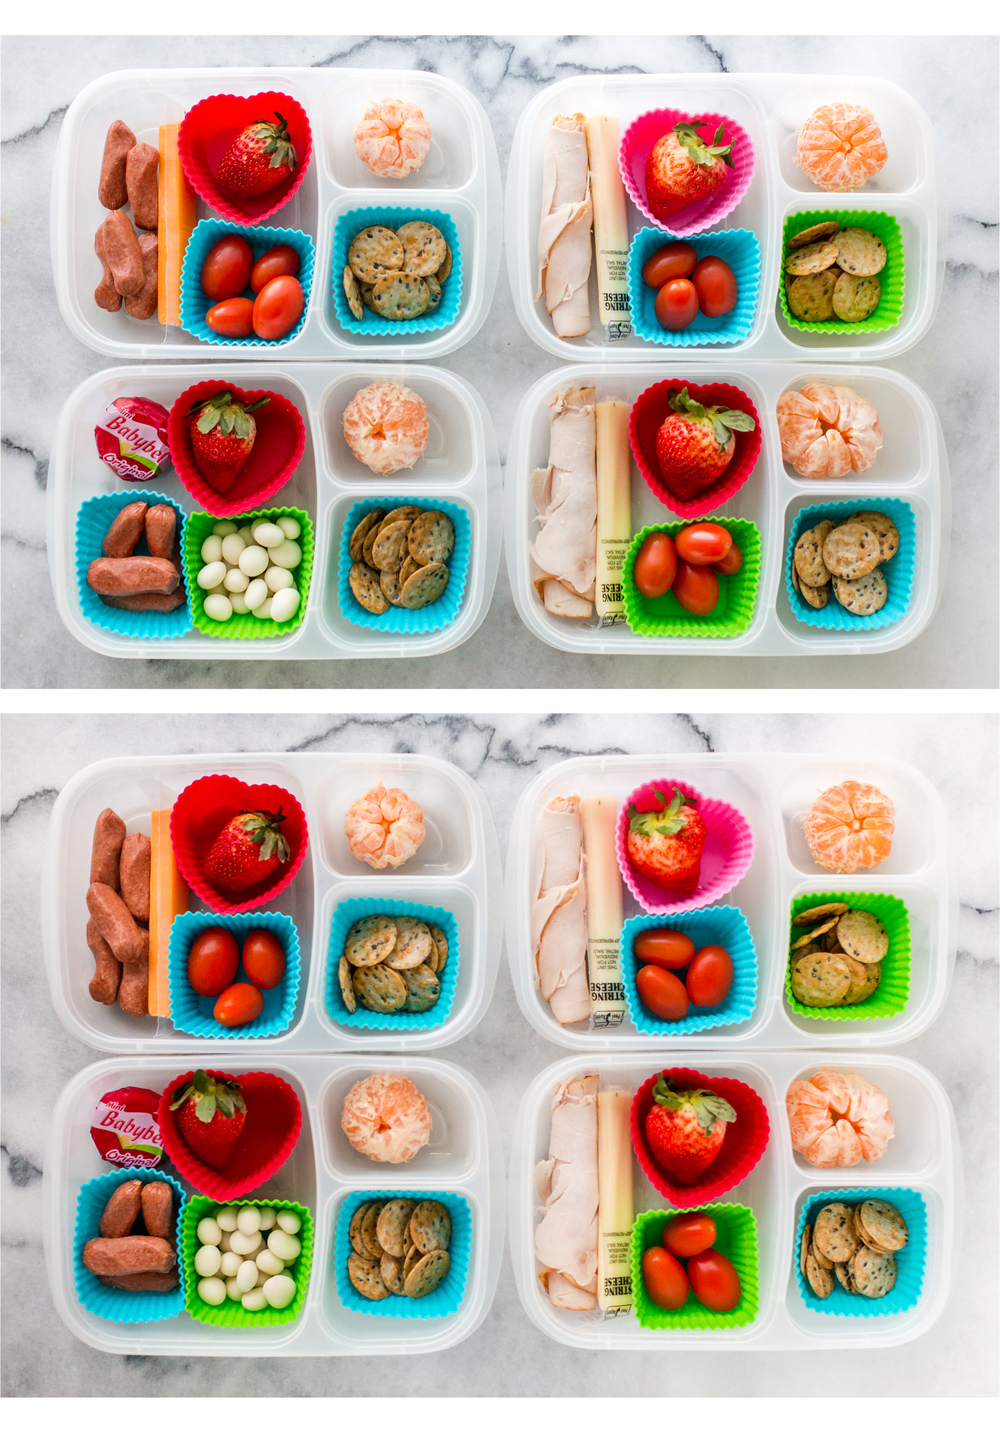 This is a lunch that was packed three days ahead of time. The top picture was taken the day it was packed.  The bottom picture was taken three days later! Can you tell the difference?